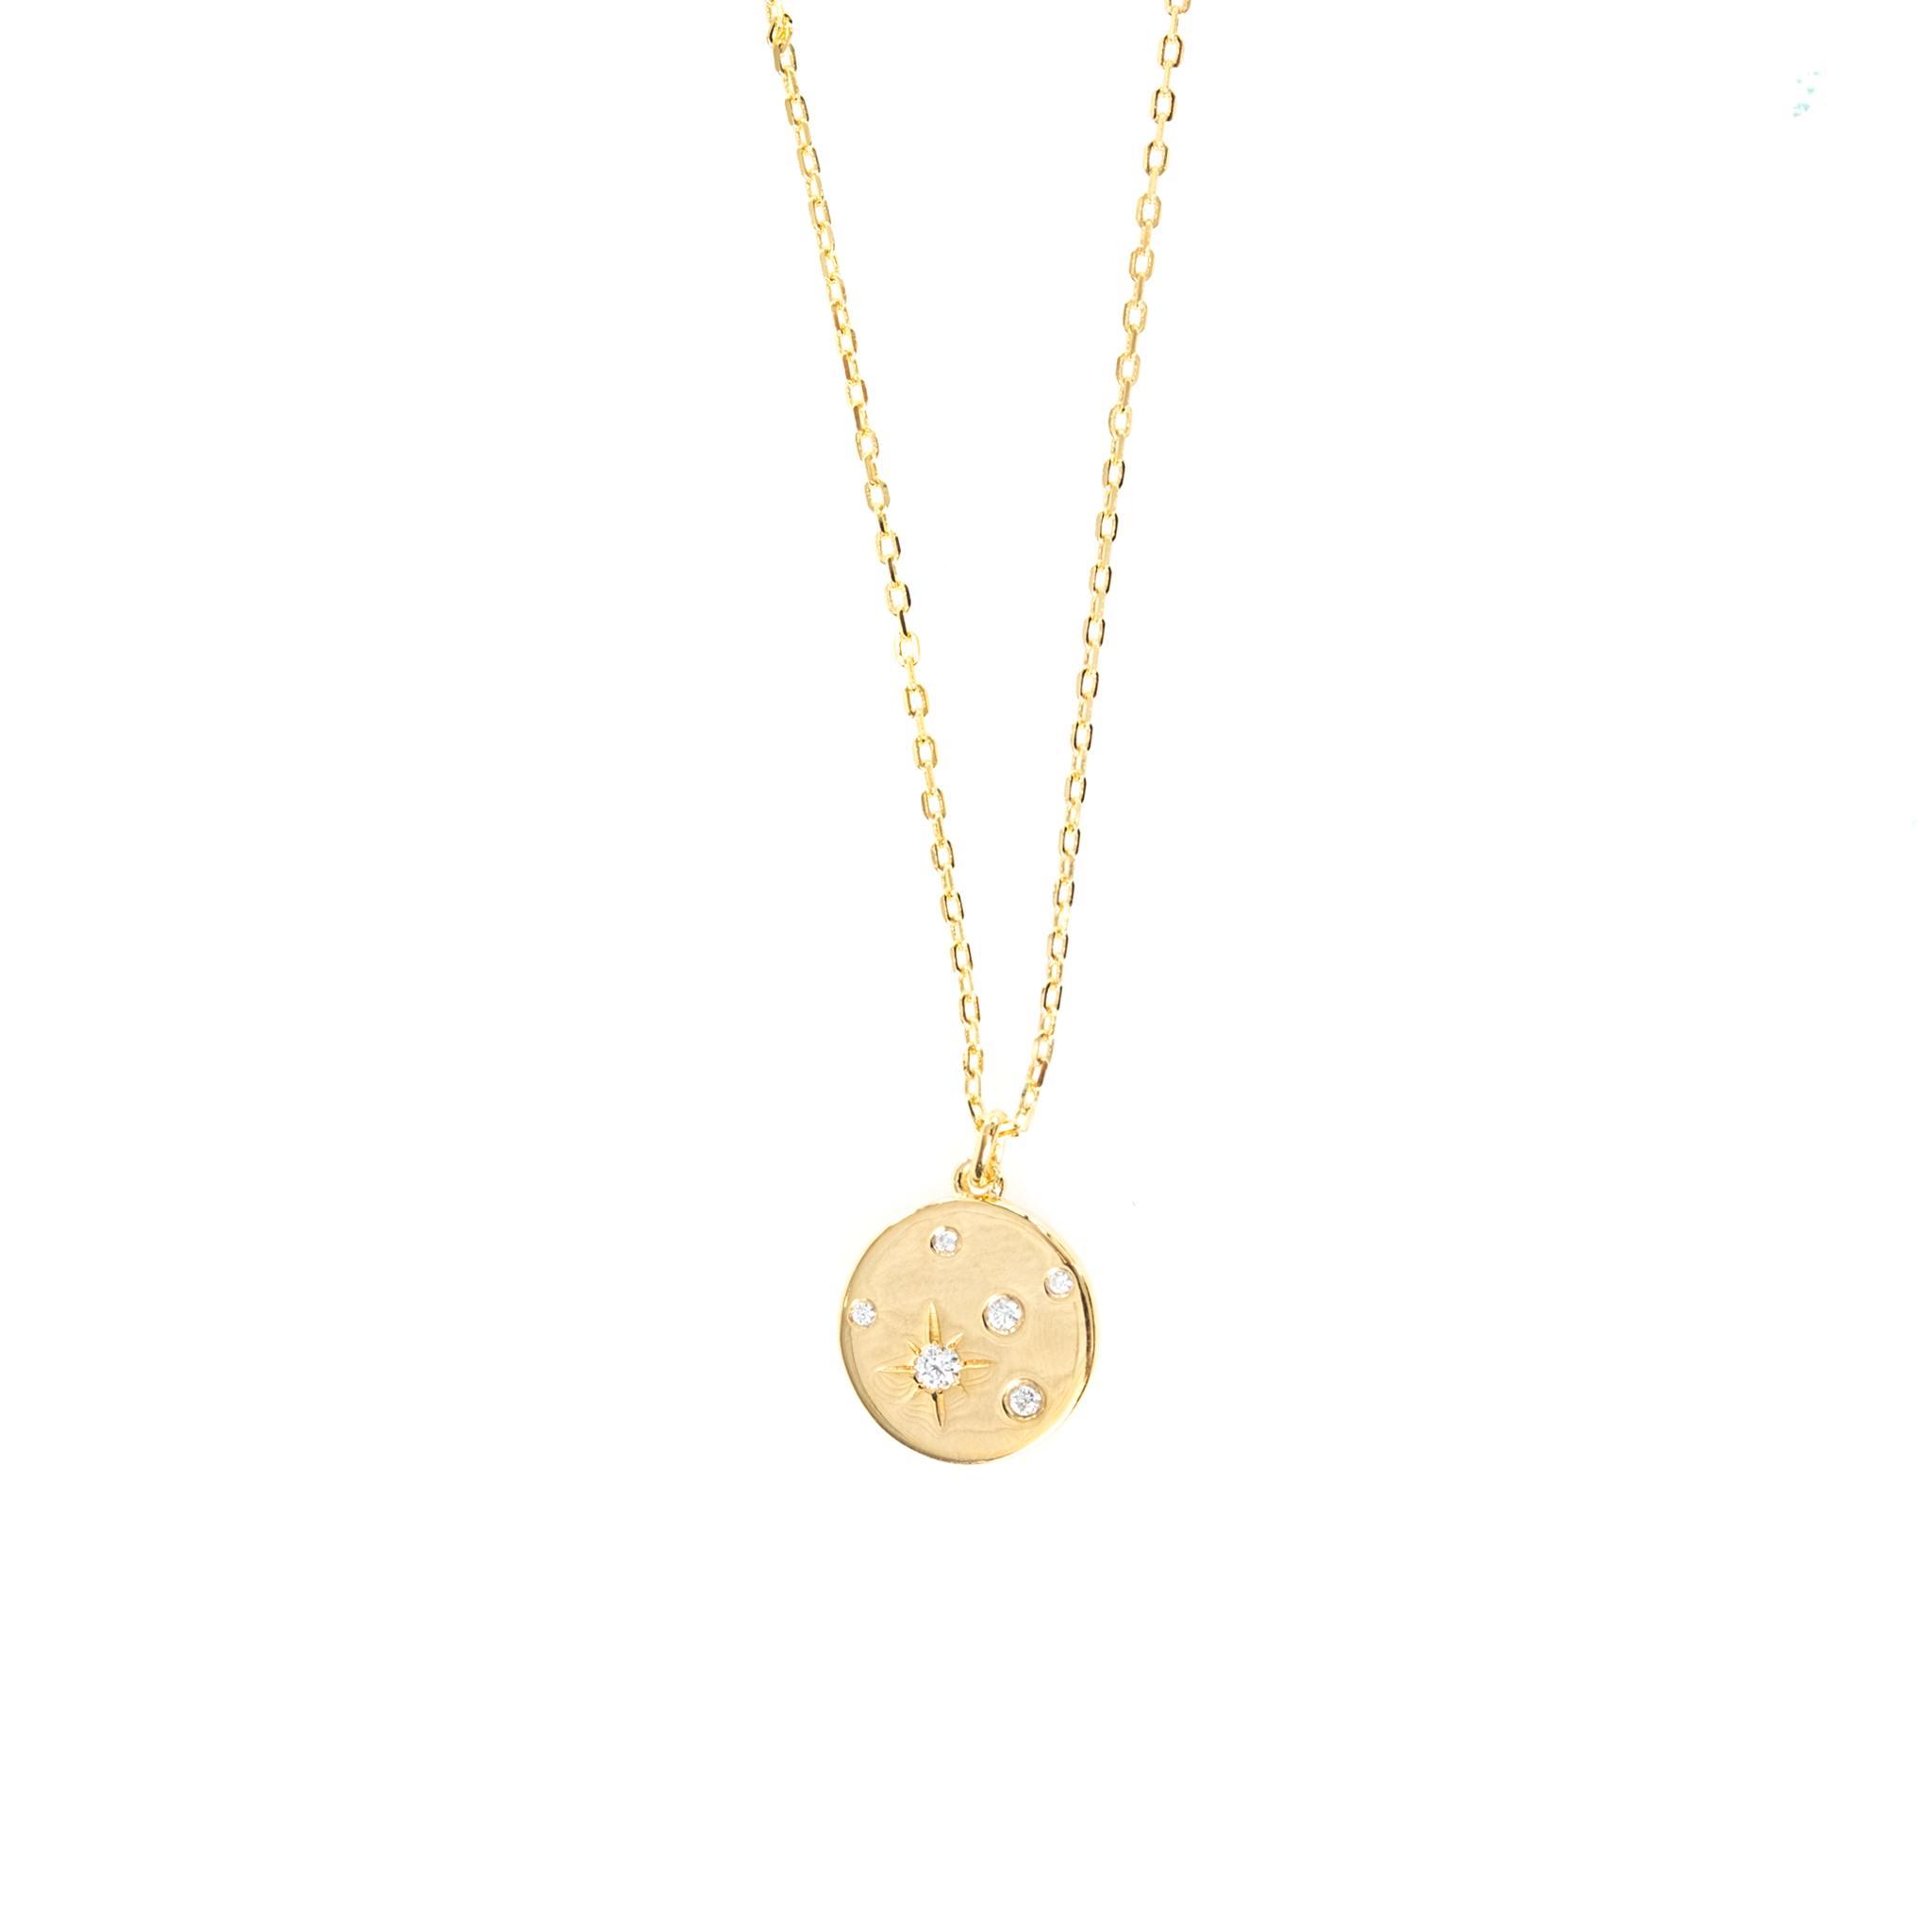 STARBURST DISC PENDANT NECKLACE IN GOLD